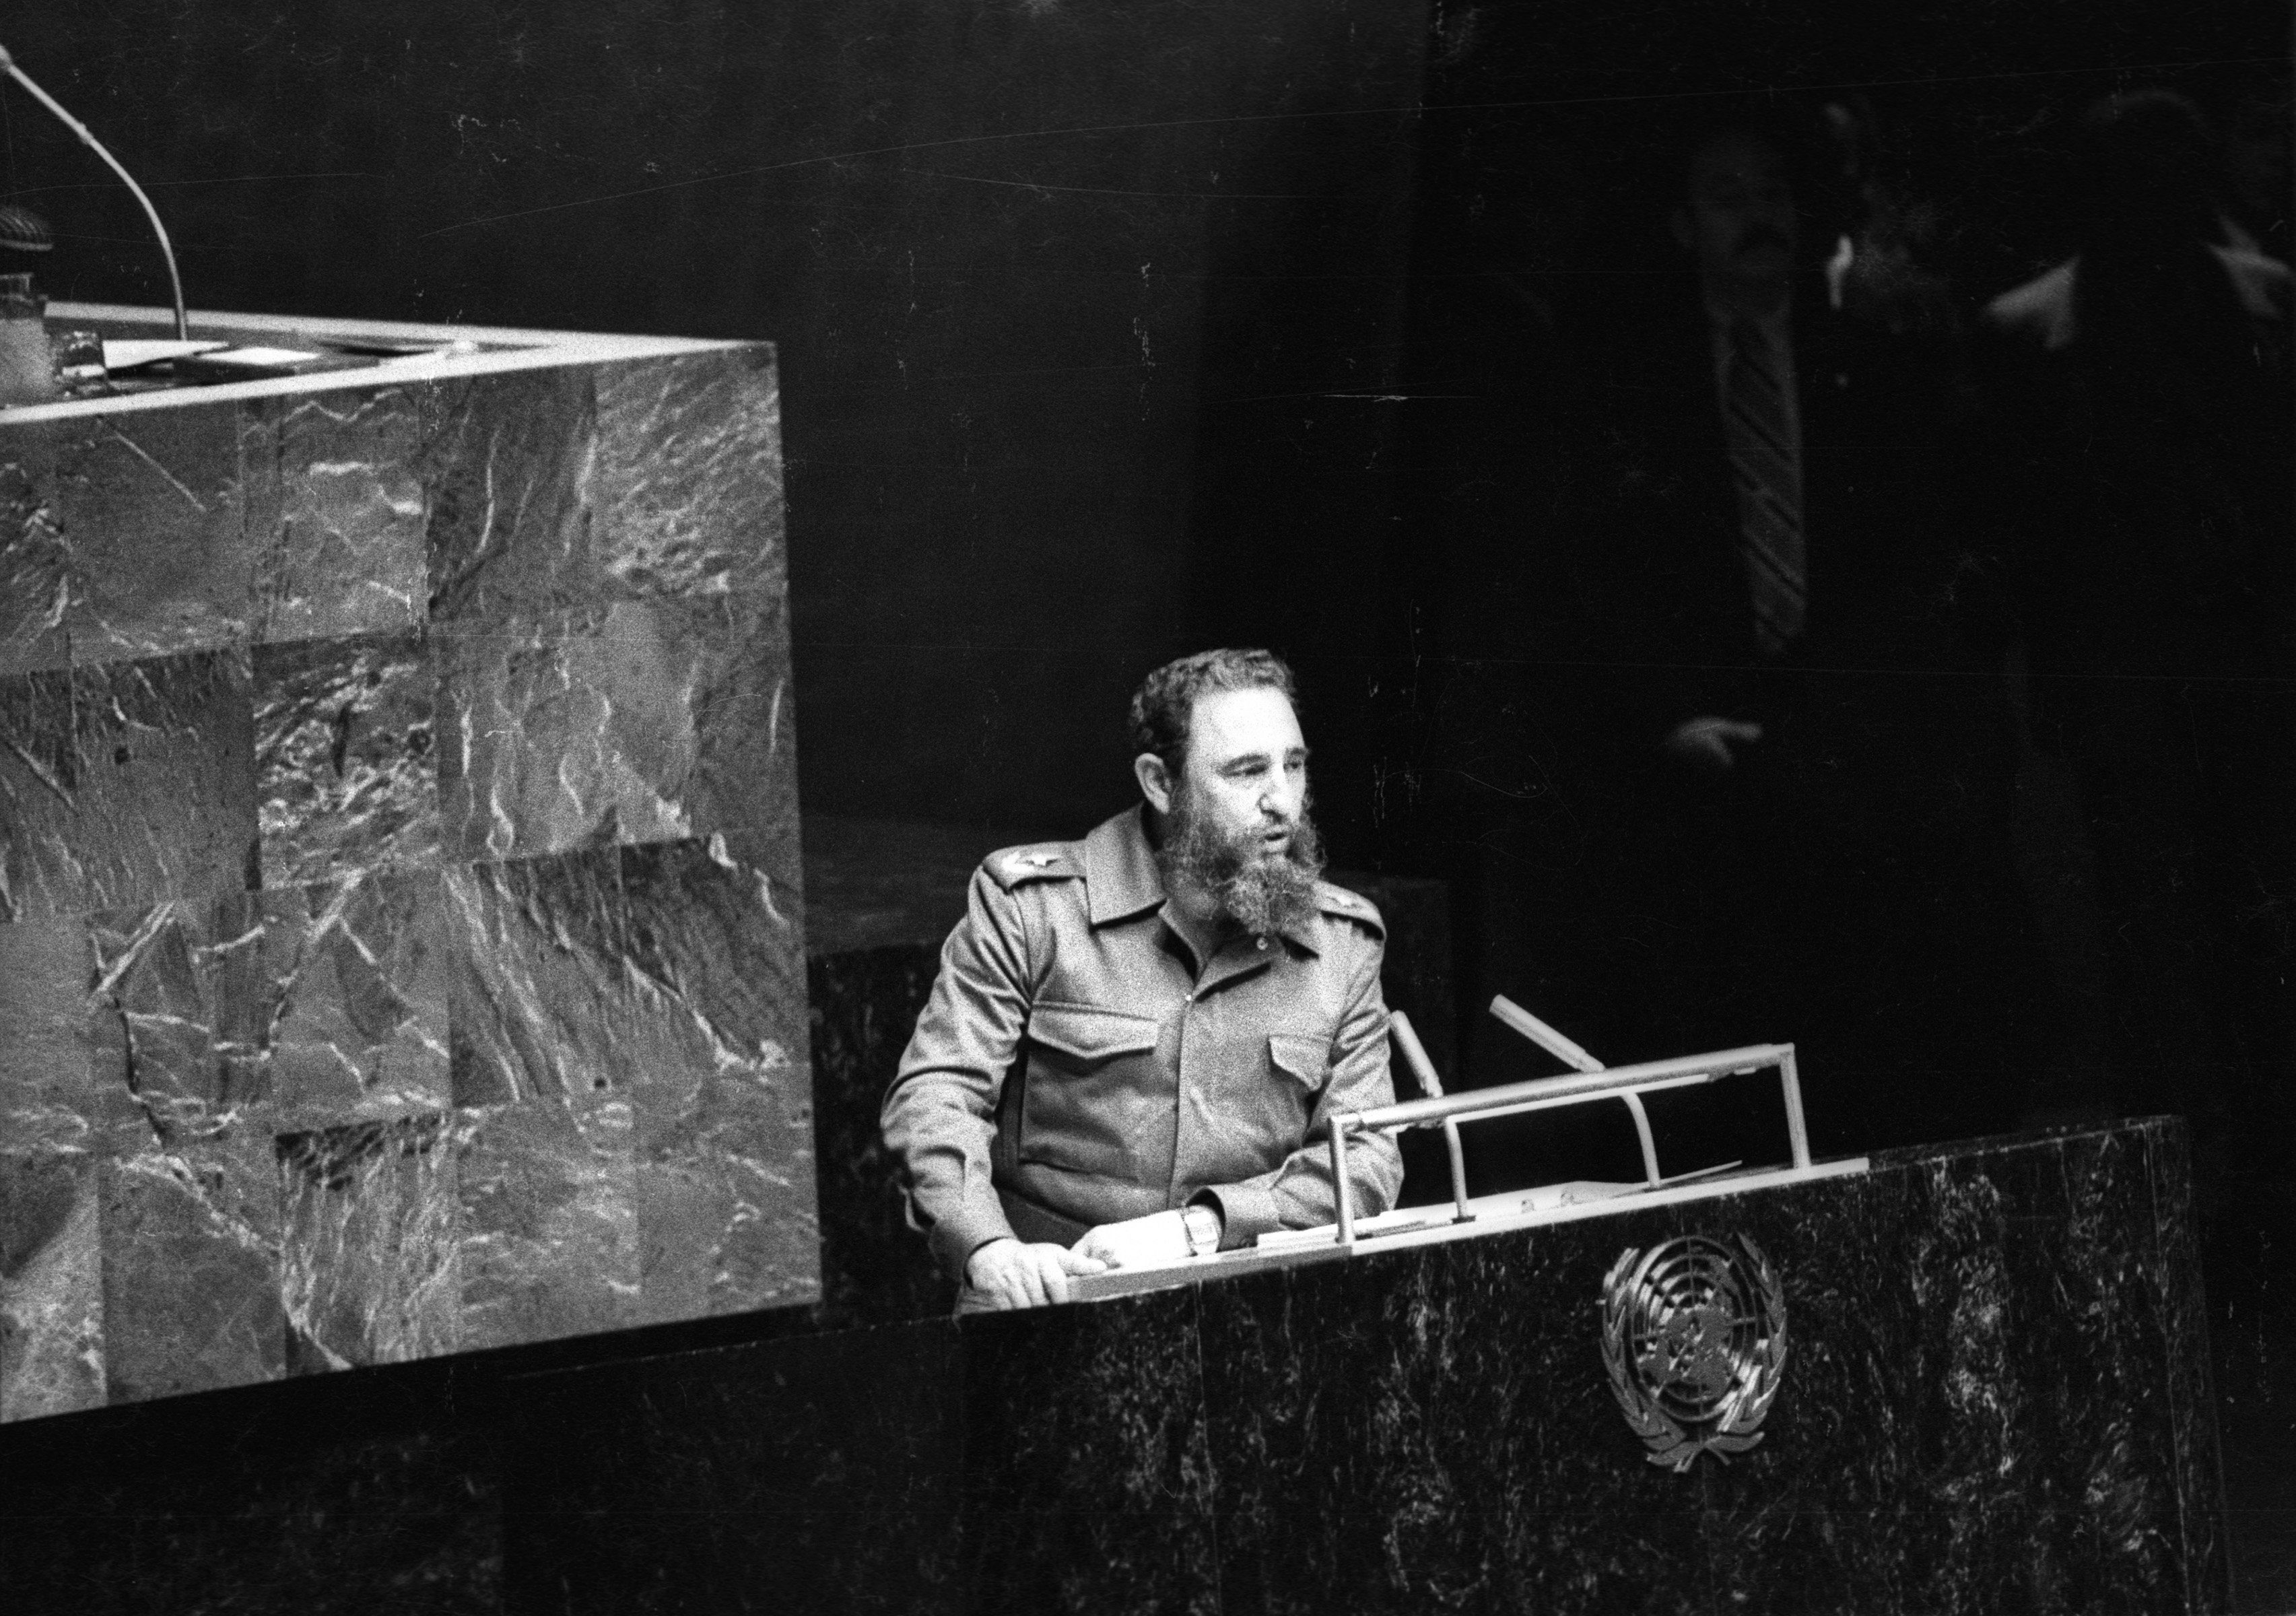 Then Cuban President Fidel Castro addresses the audience as president of the Non-Aligned Movement at the United Nations in New York, in this October 12, 1979 file photo. REUTERS/Prensa Latina/File Photo